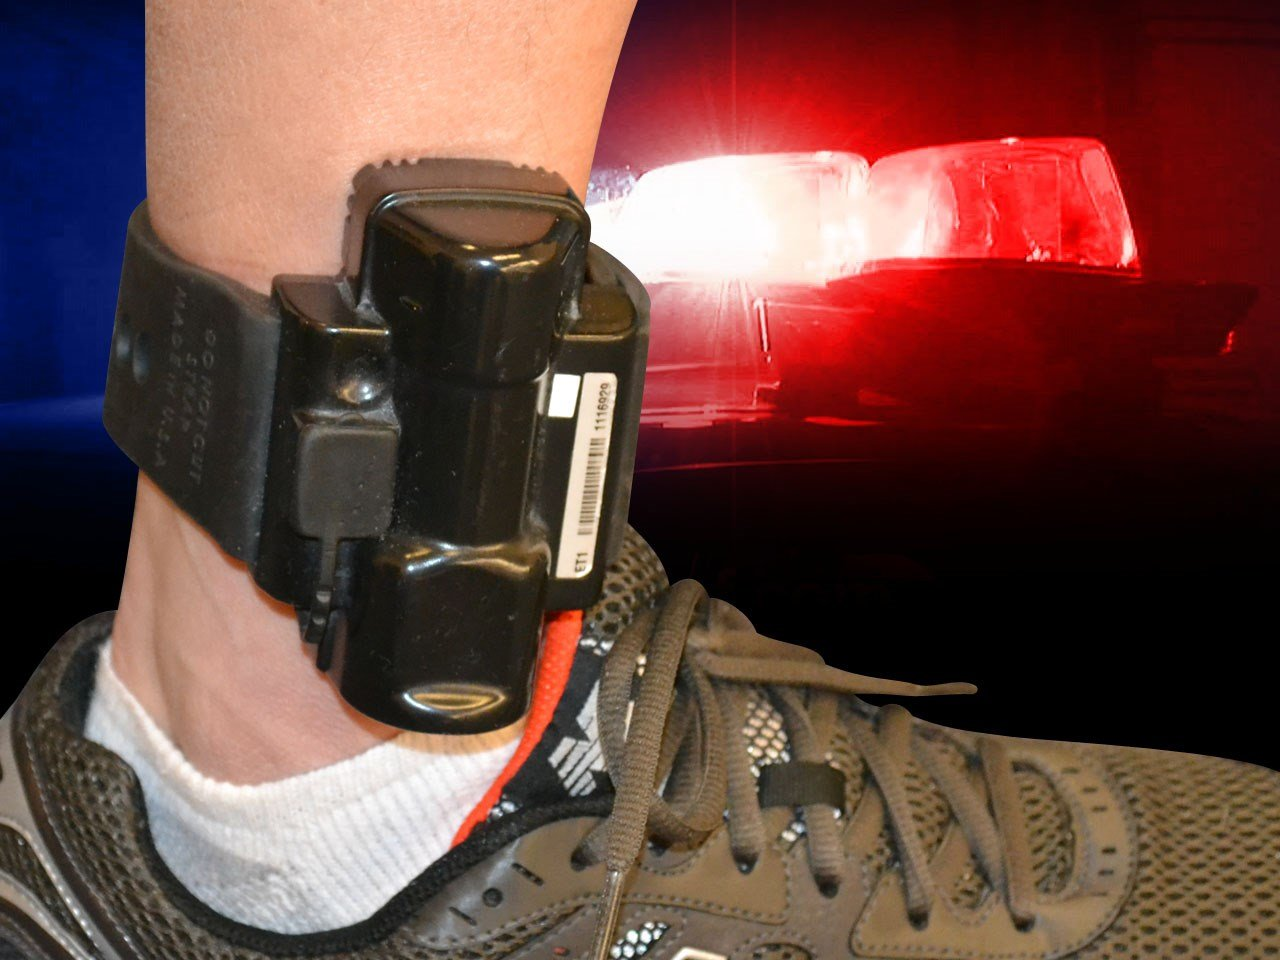 Ankle Monitor Assists In Locating Suspect In Stolen